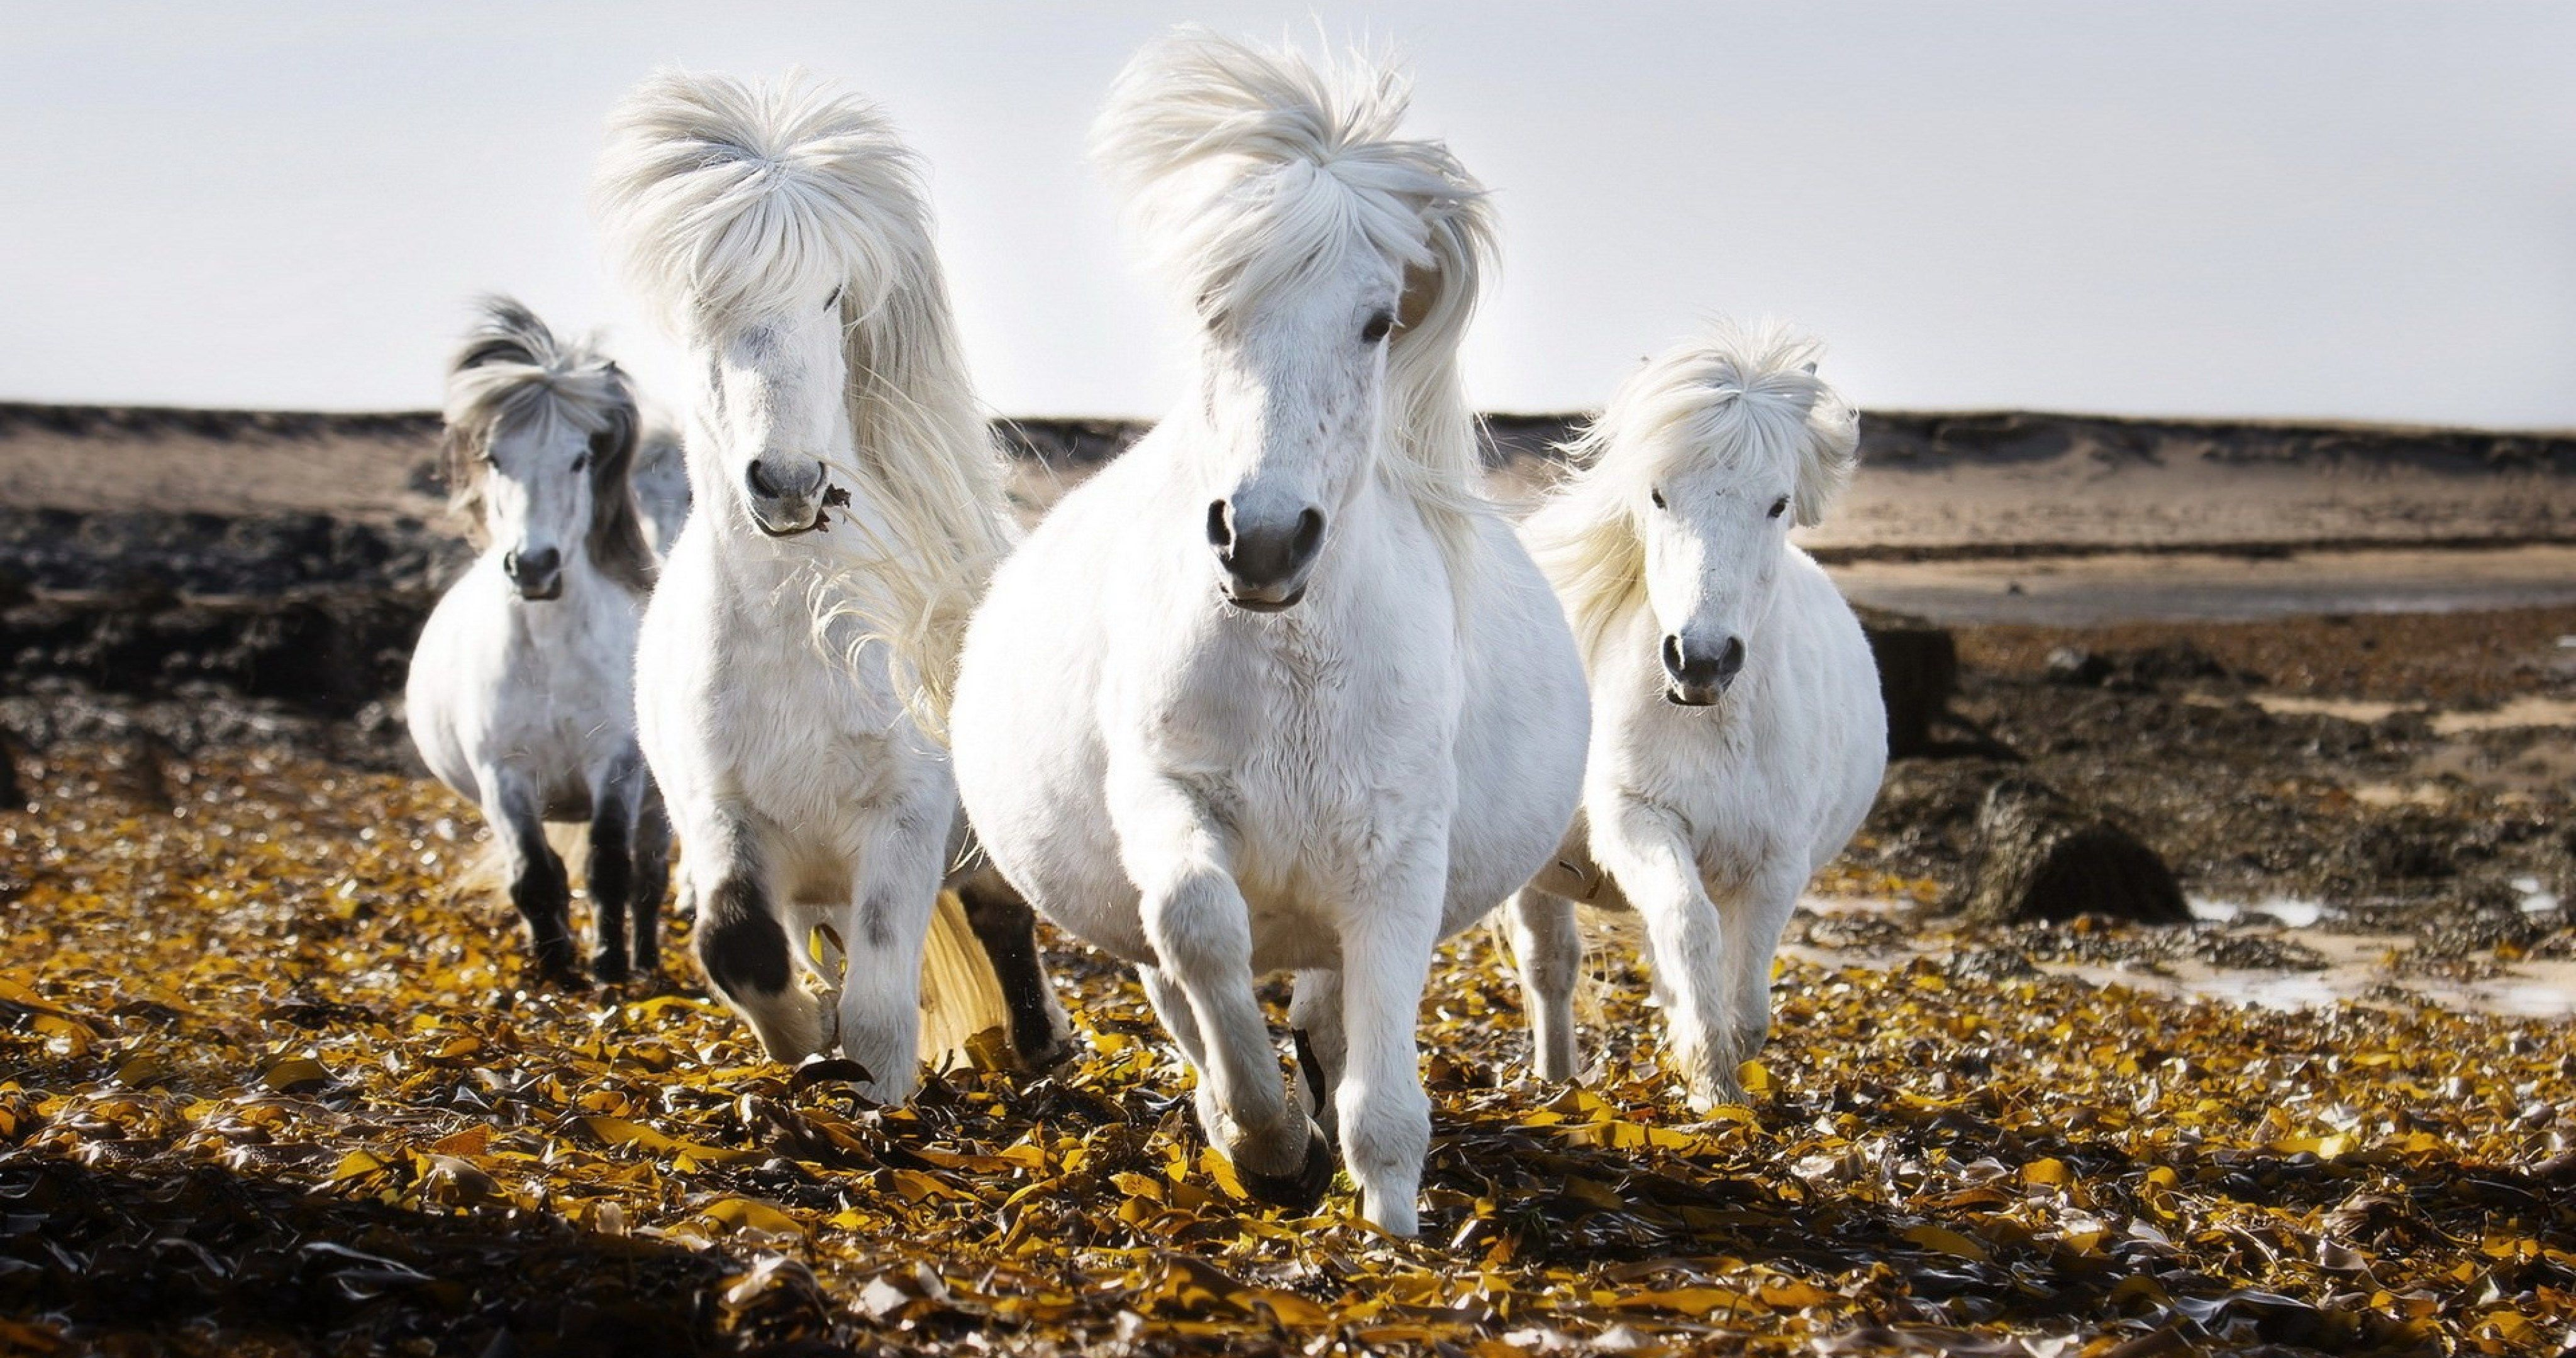 White Horses In Nature 4k Ultra Hd Wallpaper Horses White Horses Beautiful Horses